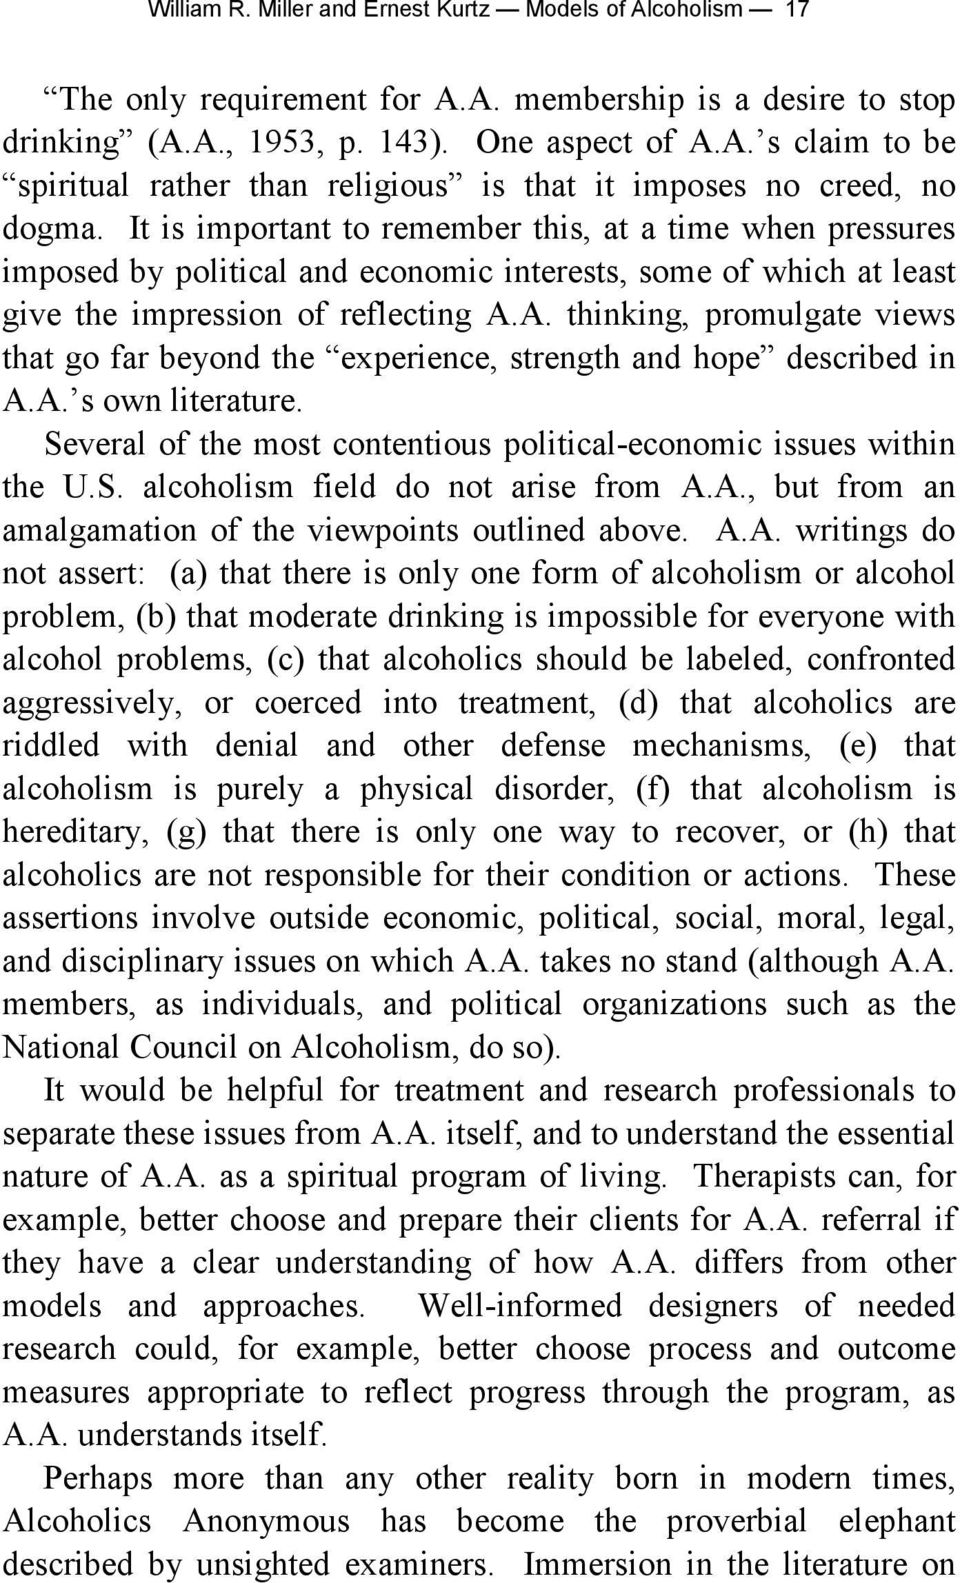 A. thinking, promulgate views that go far beyond the experience, strength and hope described in A.A. s own literature. Several of the most contentious political-economic issues within the U.S. alcoholism field do not arise from A.